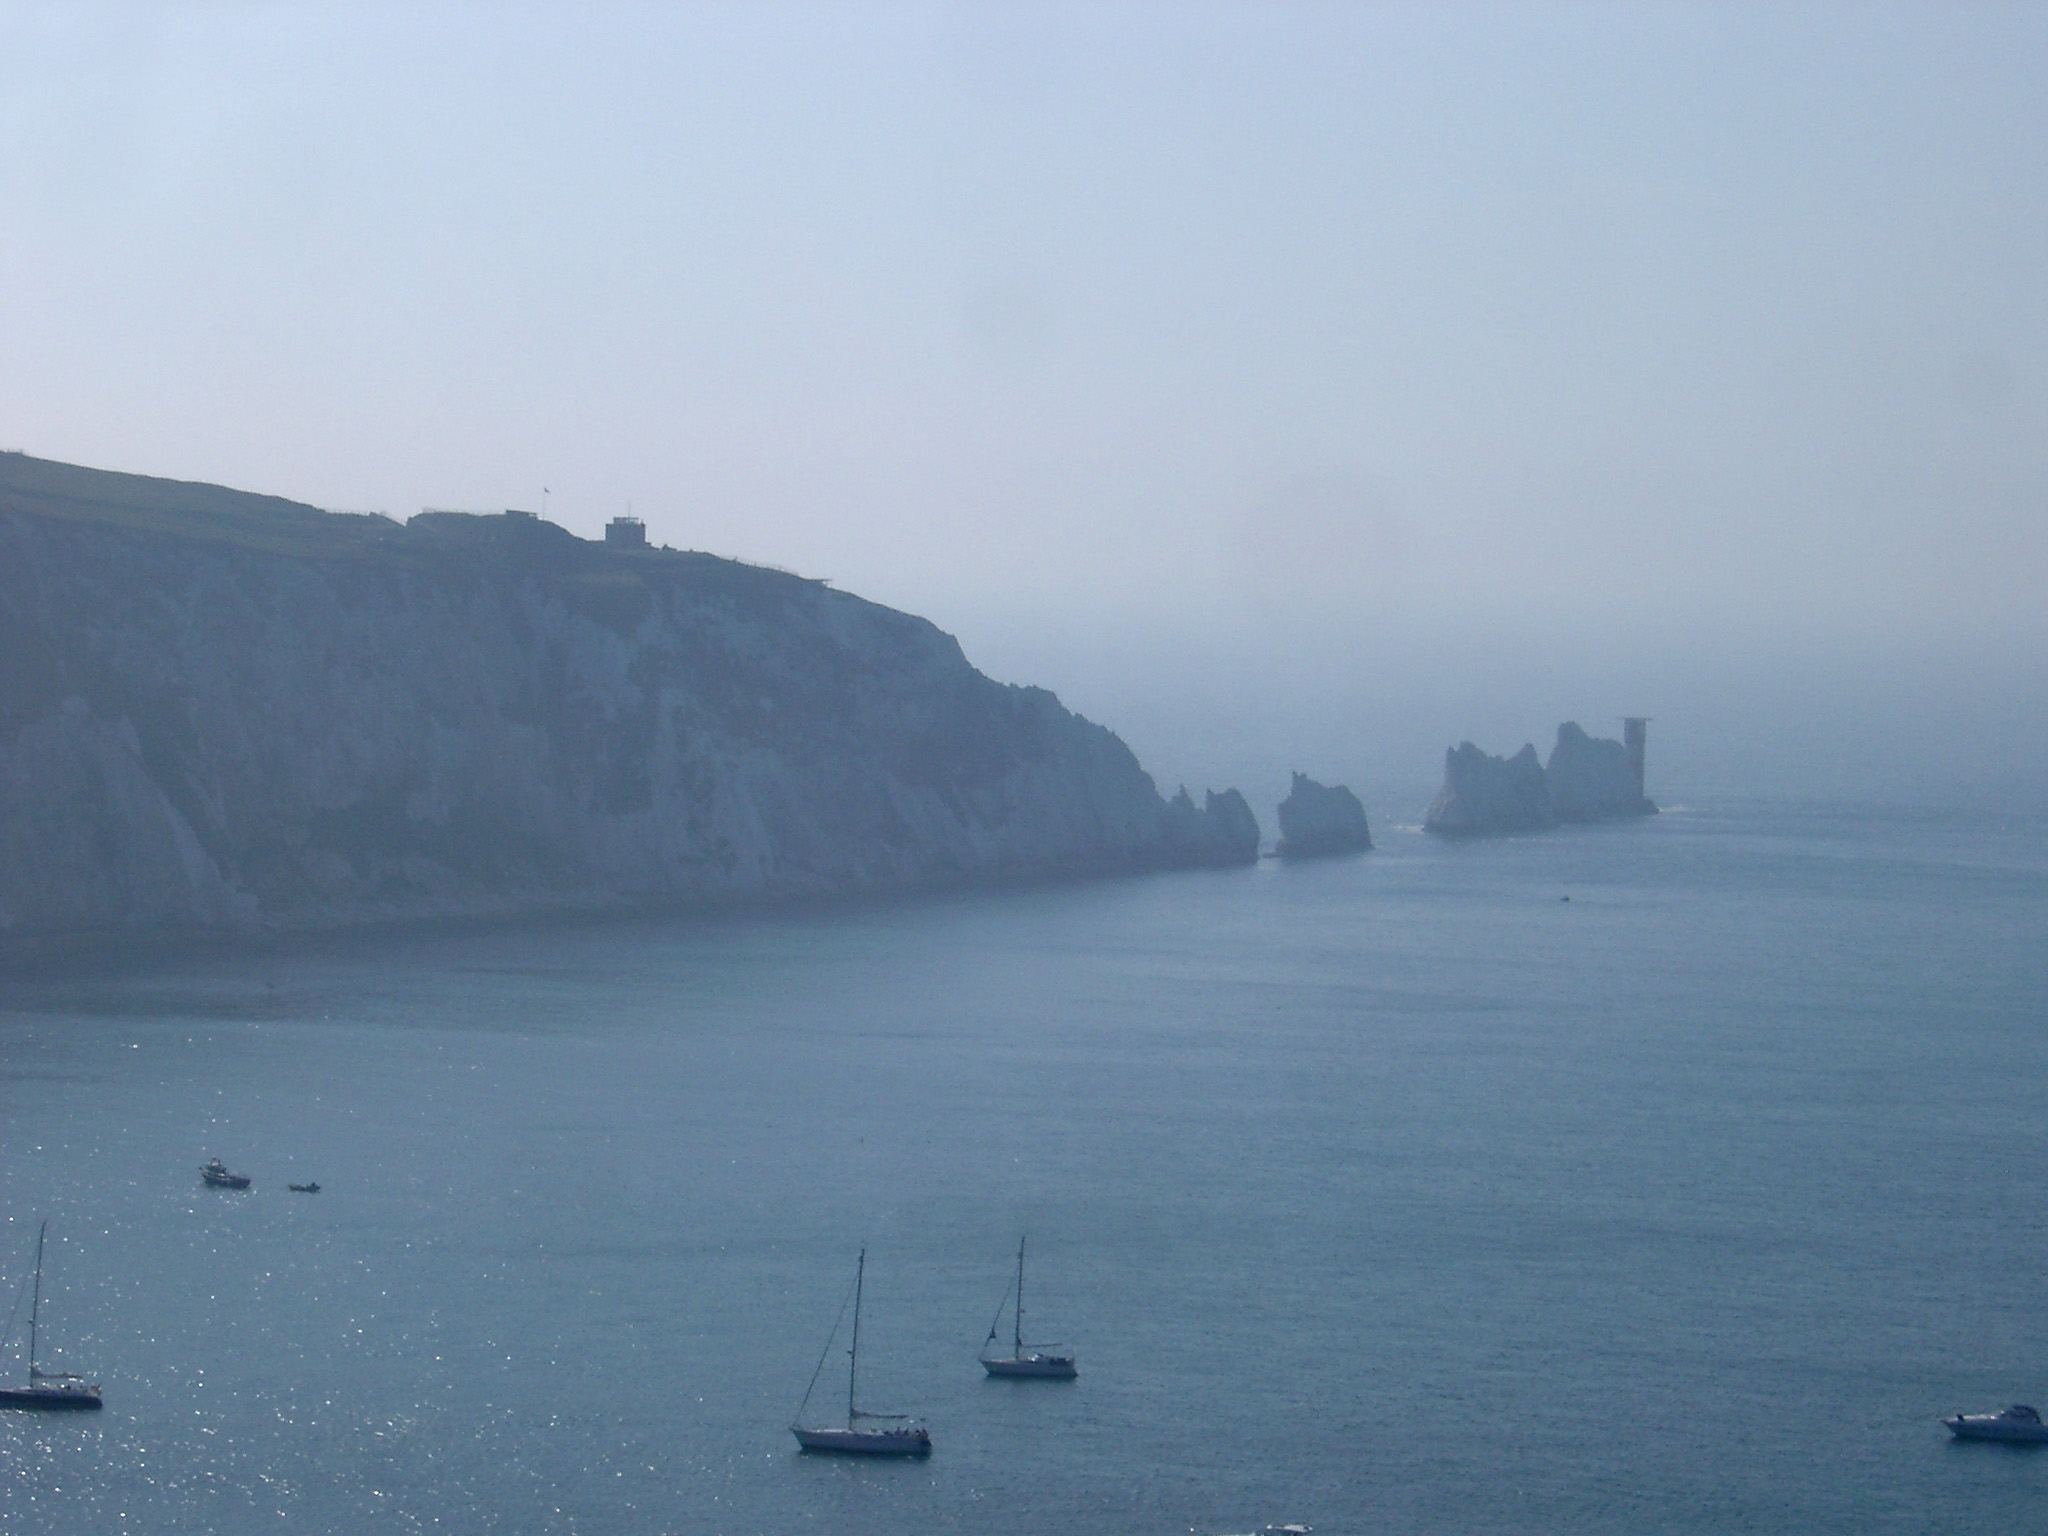 The Needles, Isle of White, a line of chalk stacks rising from the ocean just offshore from the headland